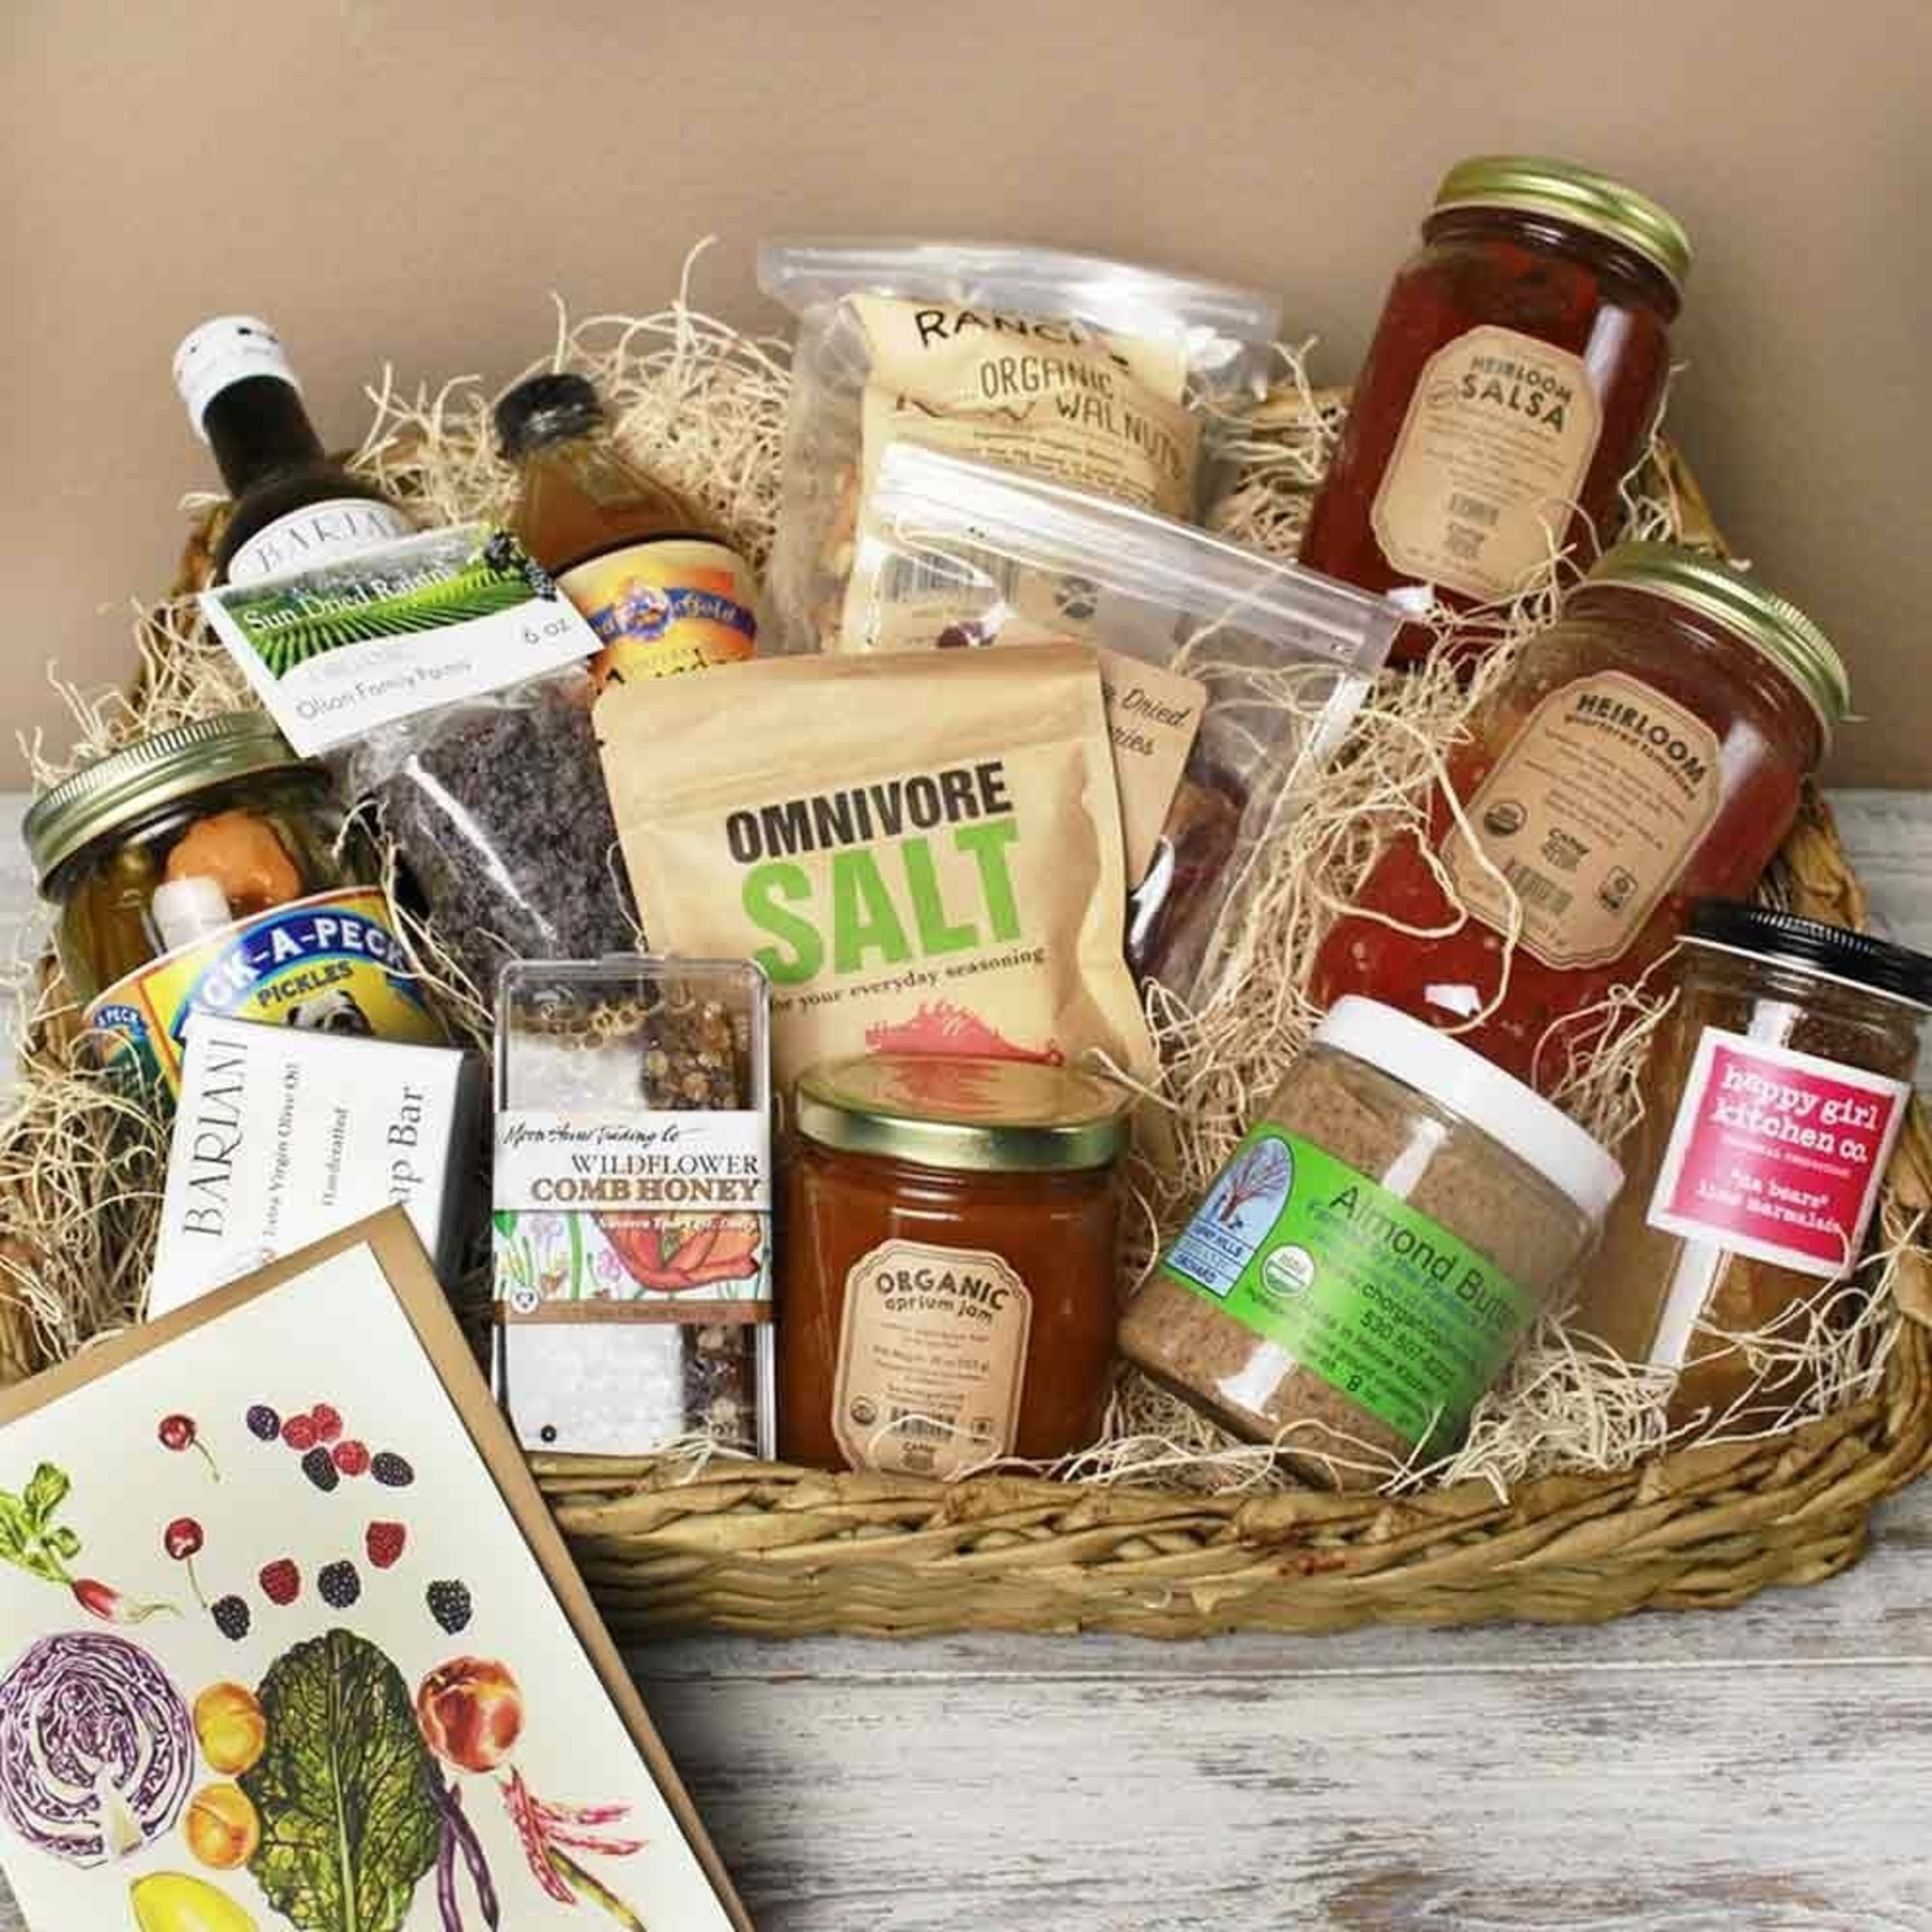 Farm Fresh To You offers gift items and baskets this holiday season.